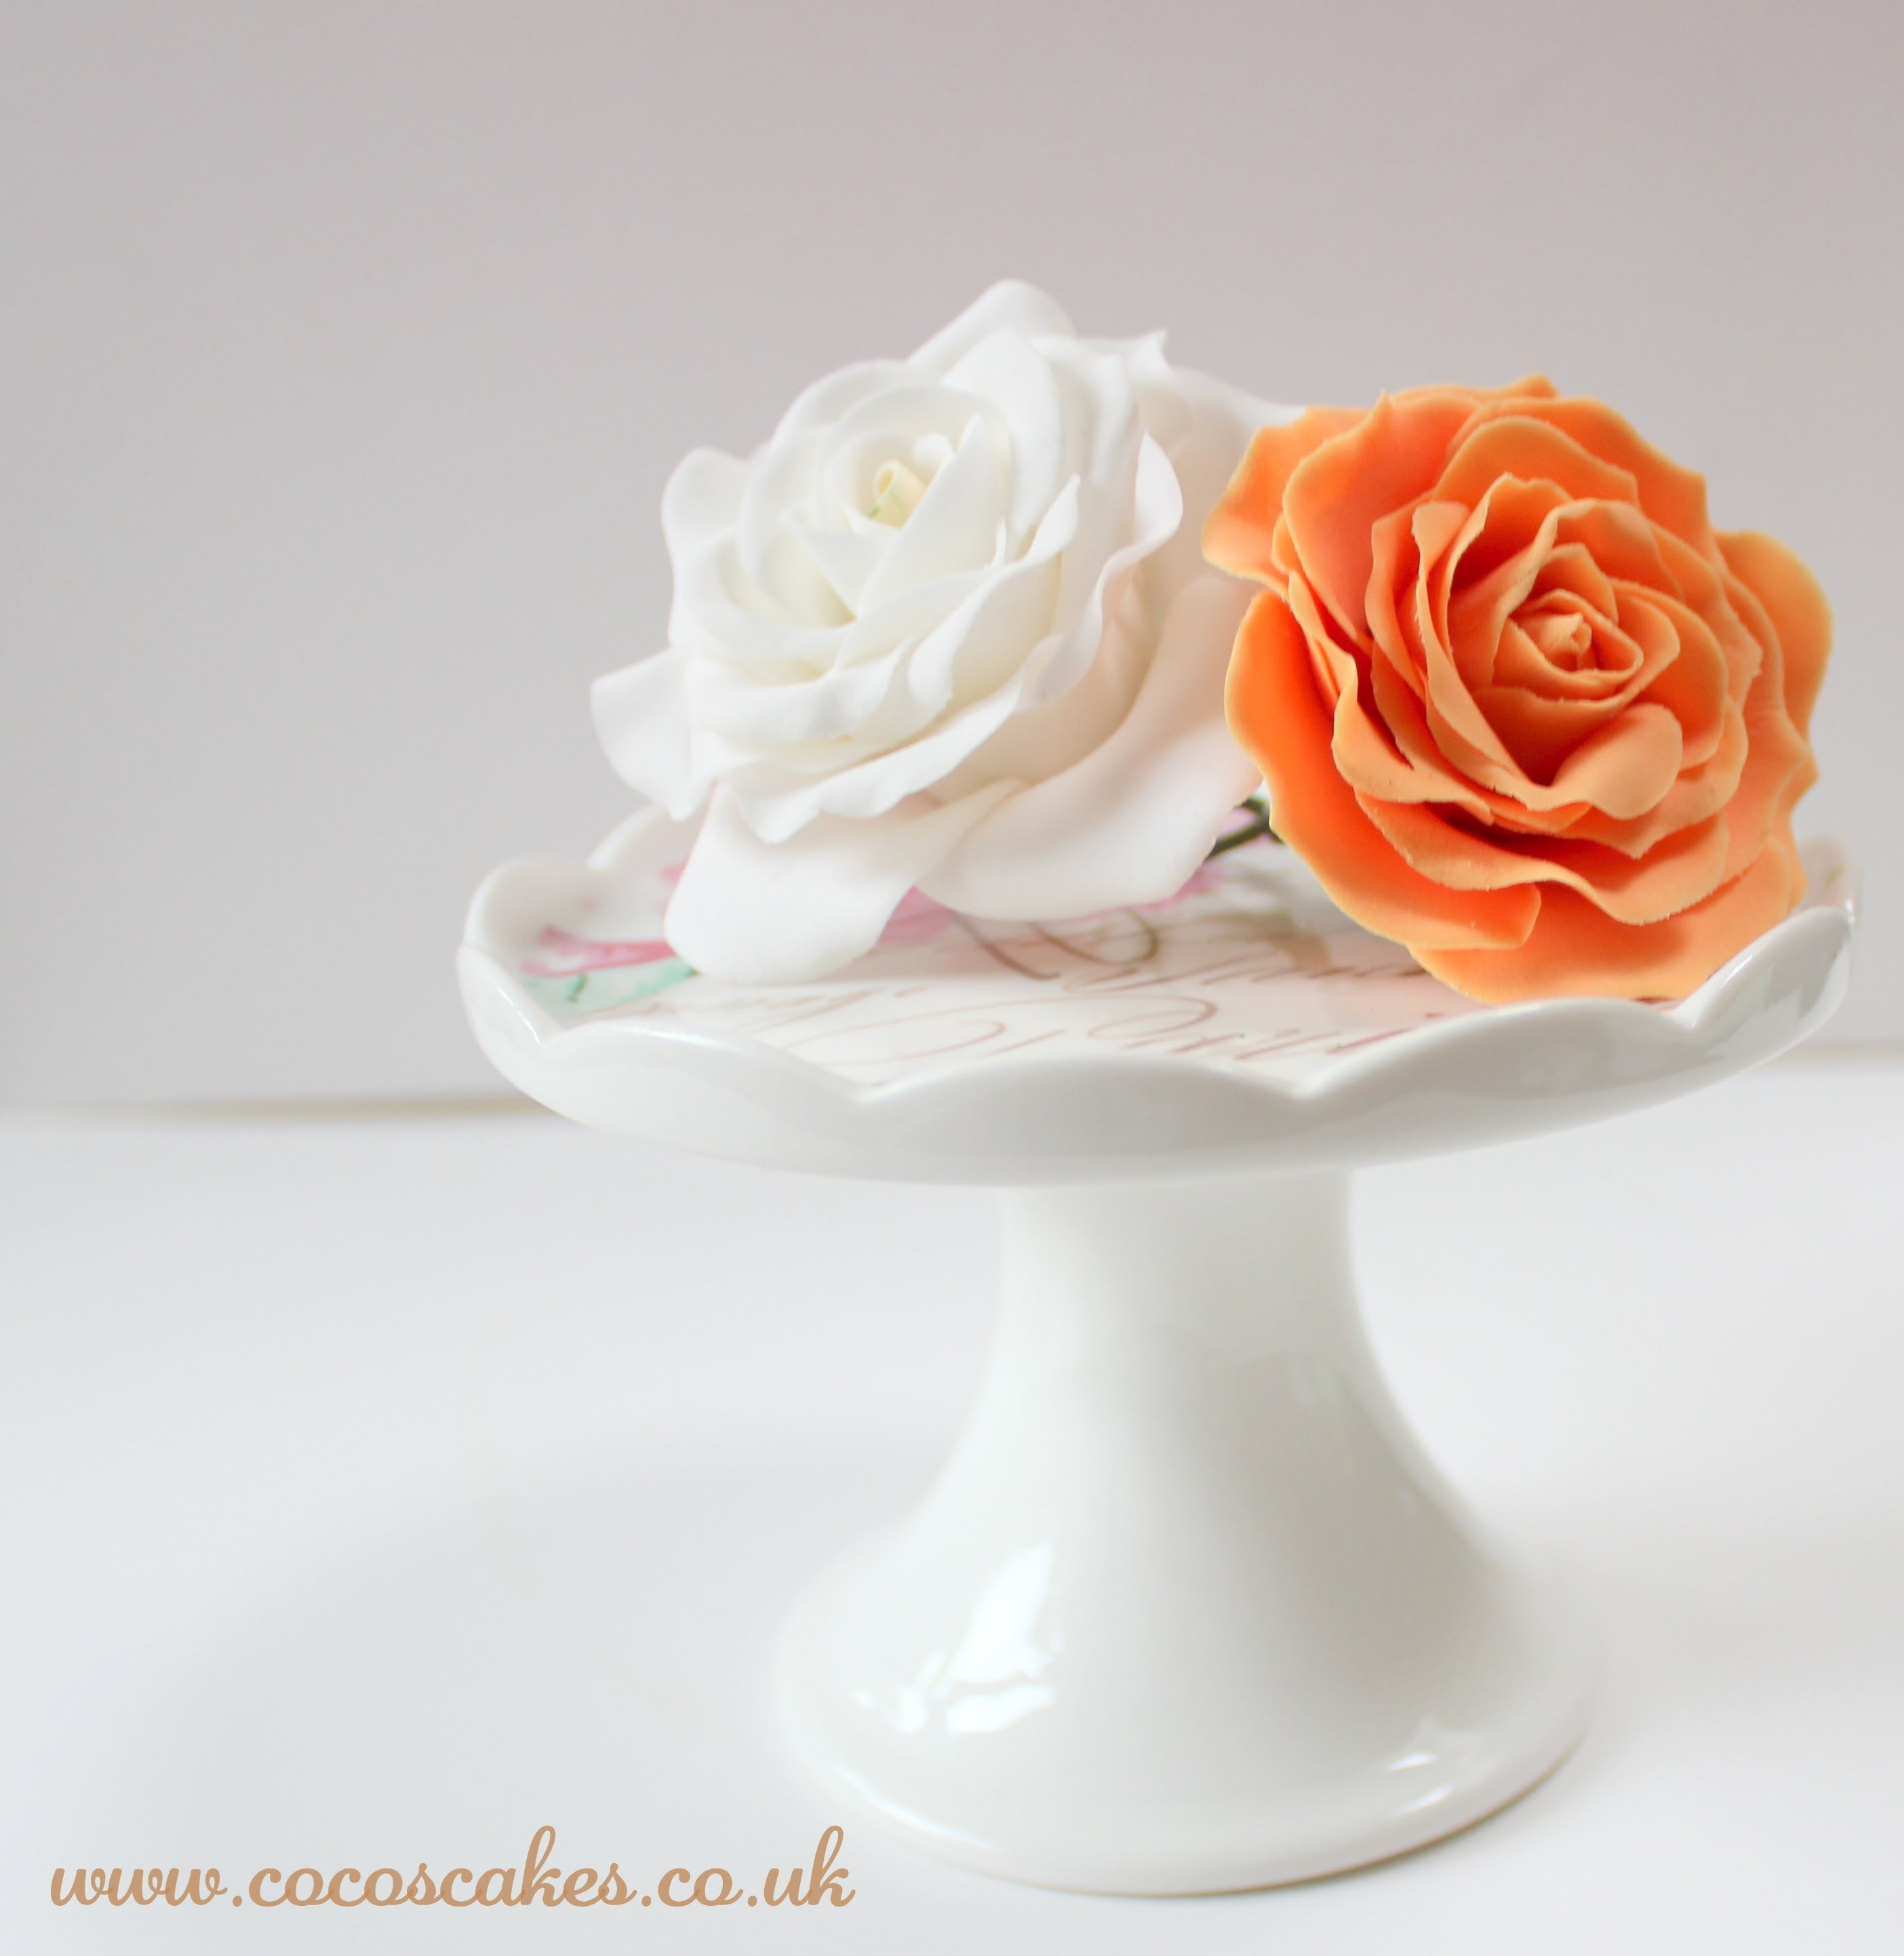 How to Make Spring Roses Tutorial (by Guest Blogger - Dhruti Patel of Coco's Cakes)